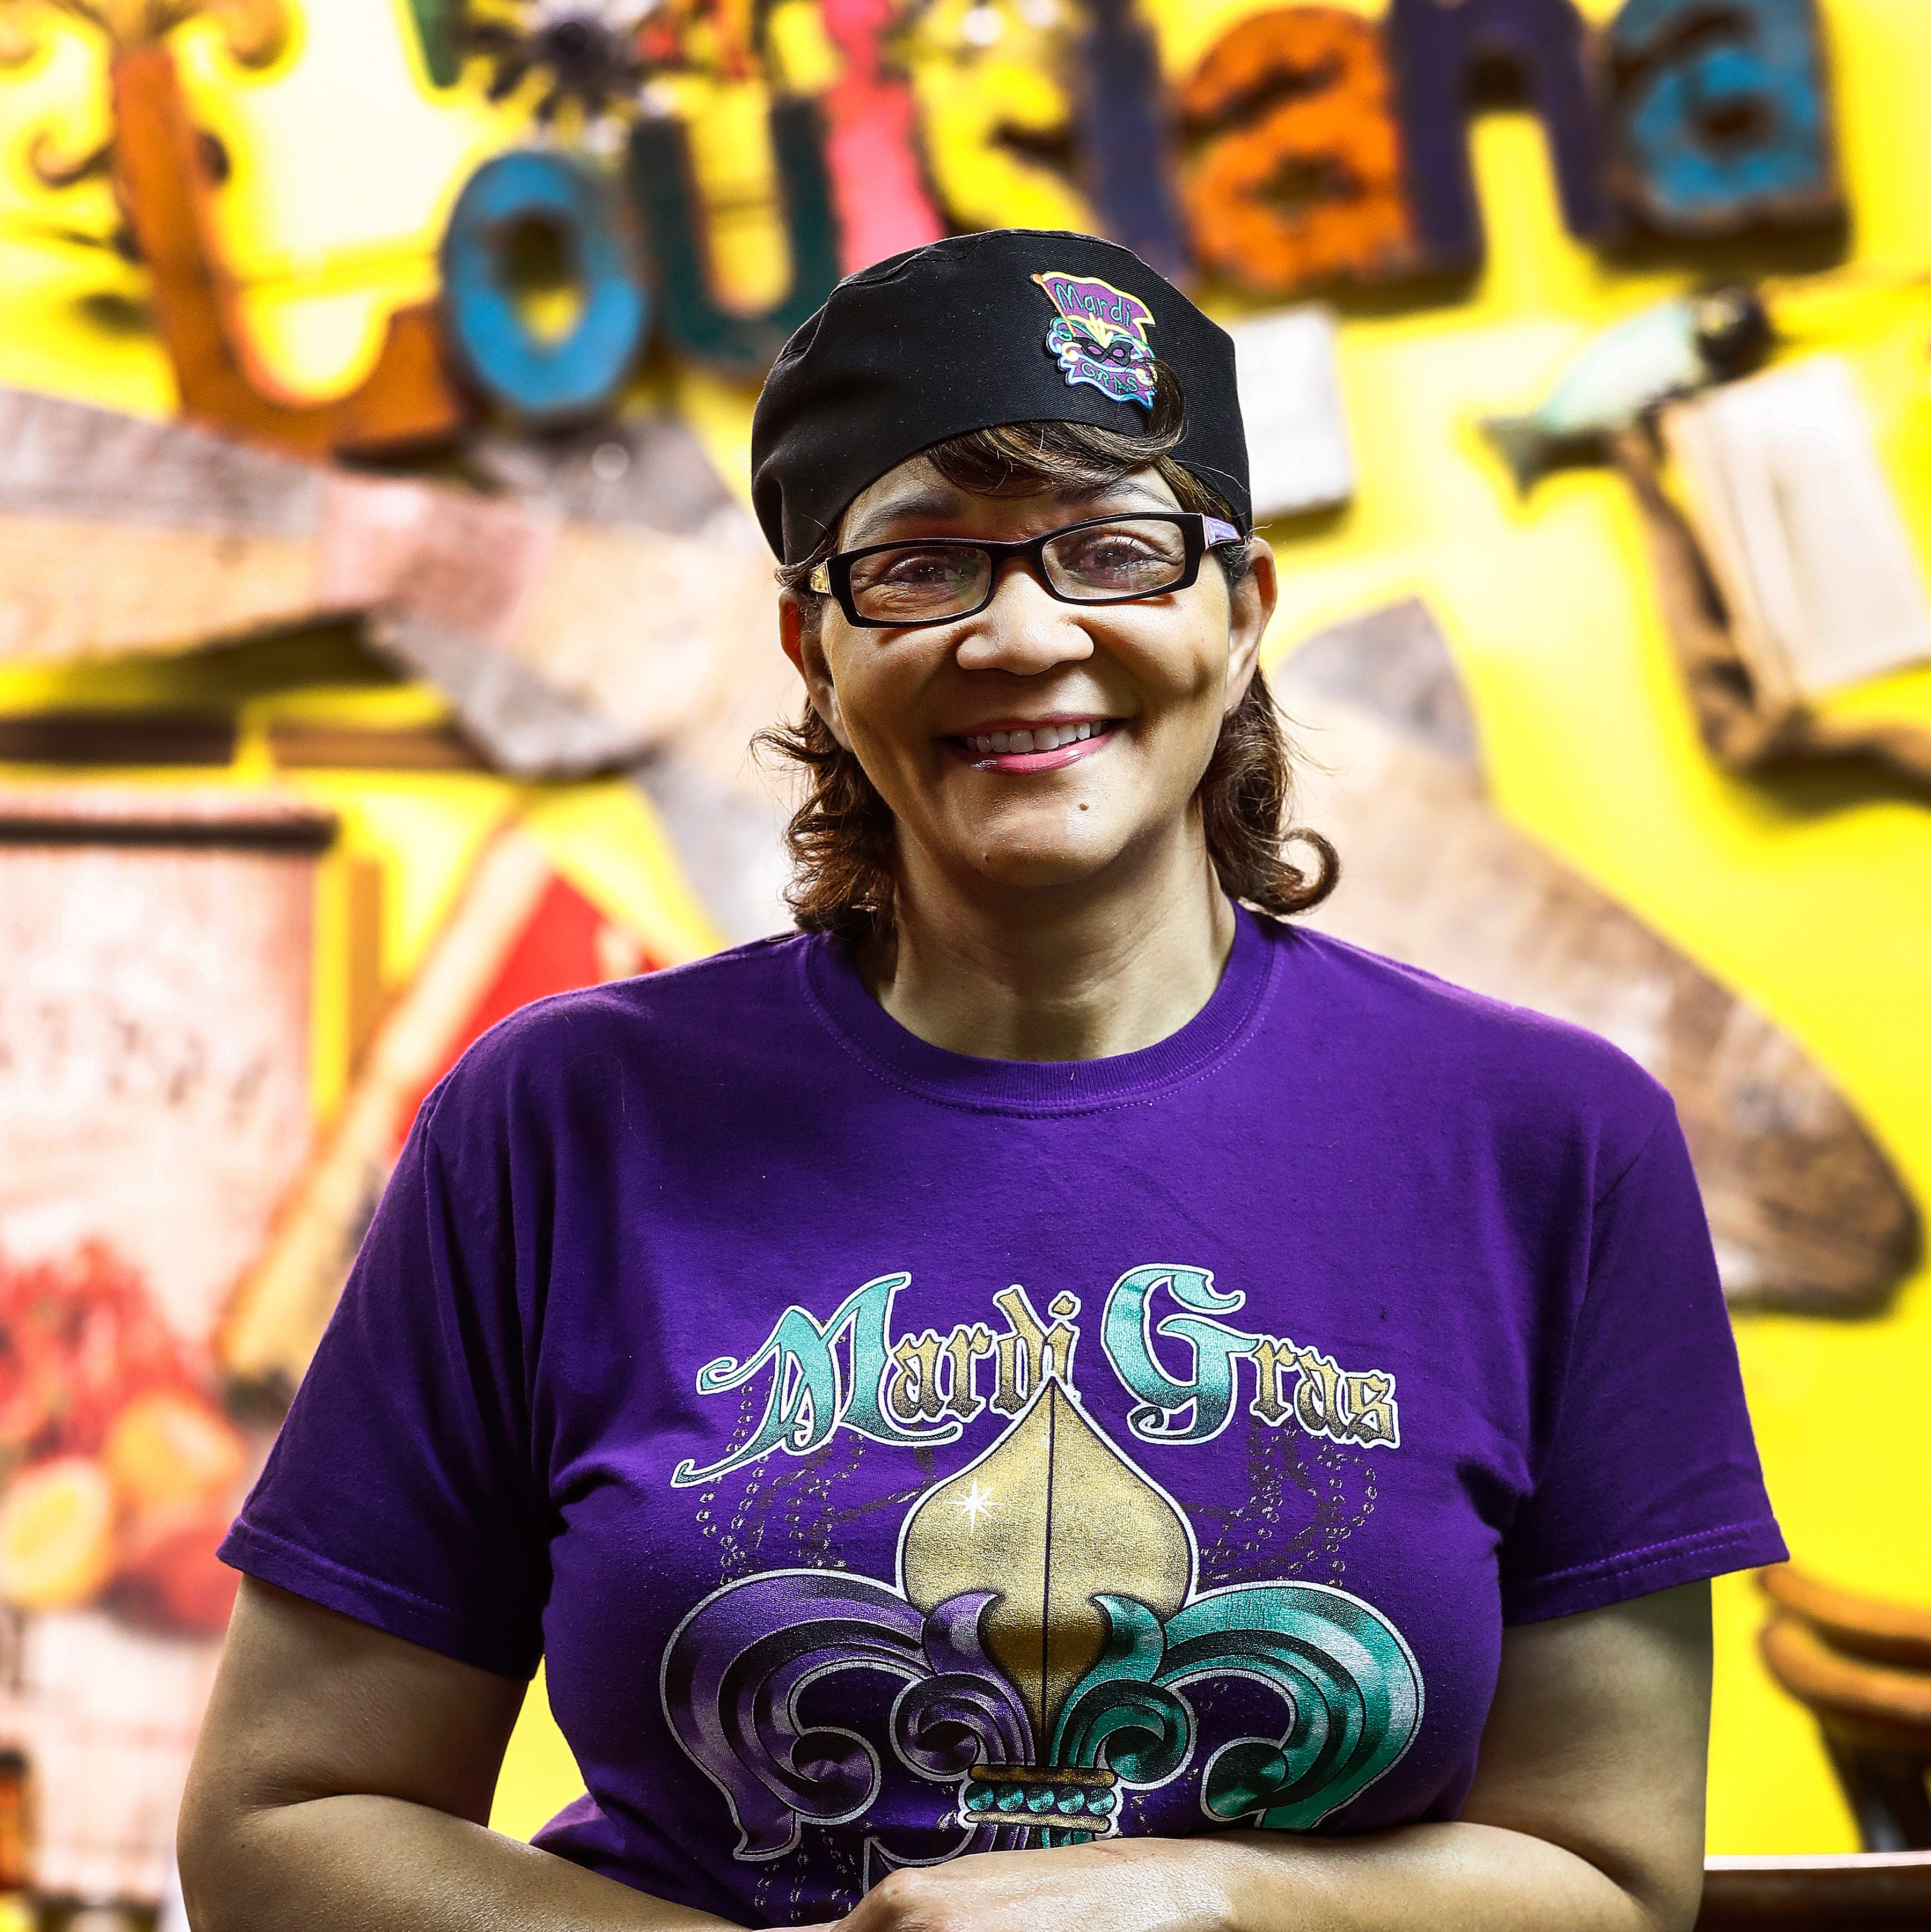 In the kitchen: Just in time for Fat Tuesday, meet Penny Henderson of Mardi Gras Memphis